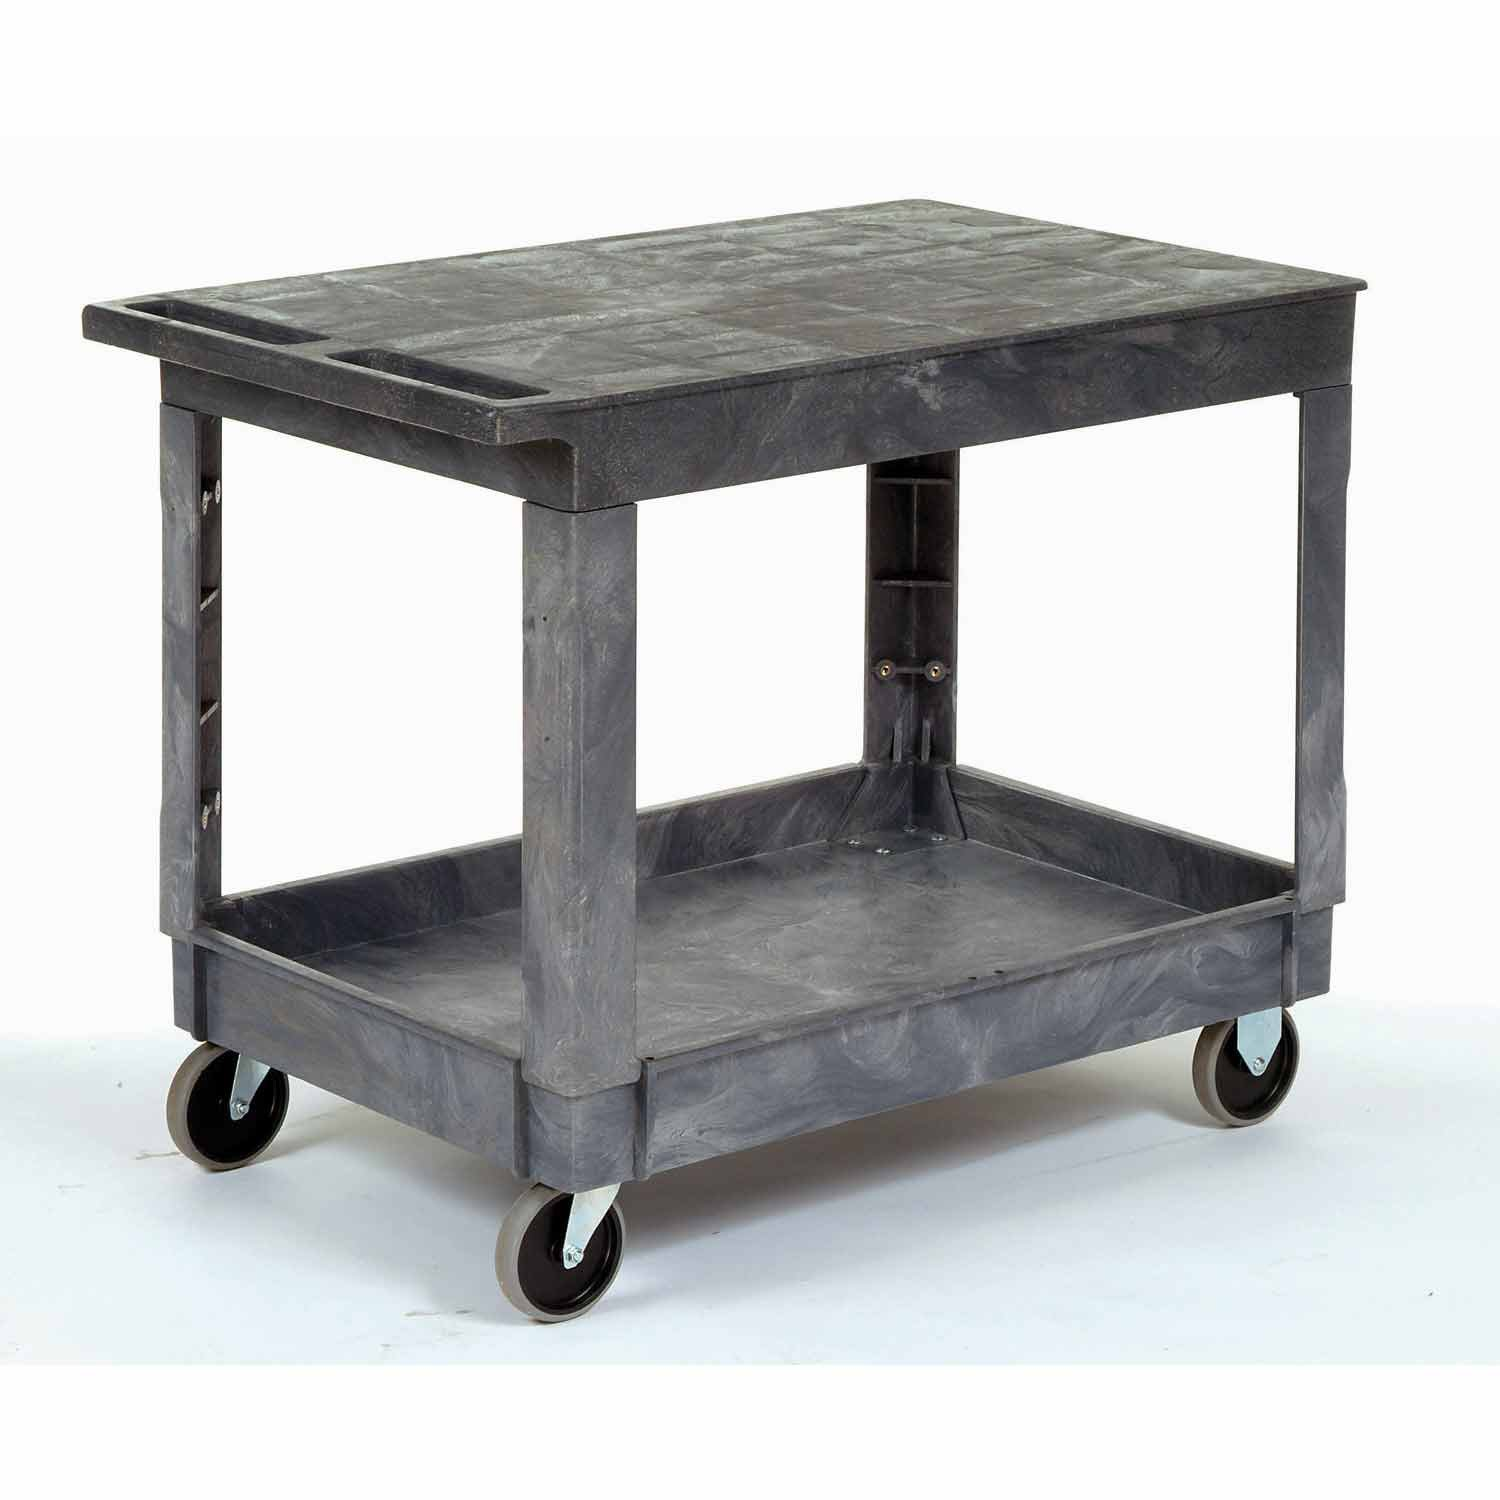 Plastic Flat Top Shelf Service & Utility Cart - 5 Inch Rubber Casters